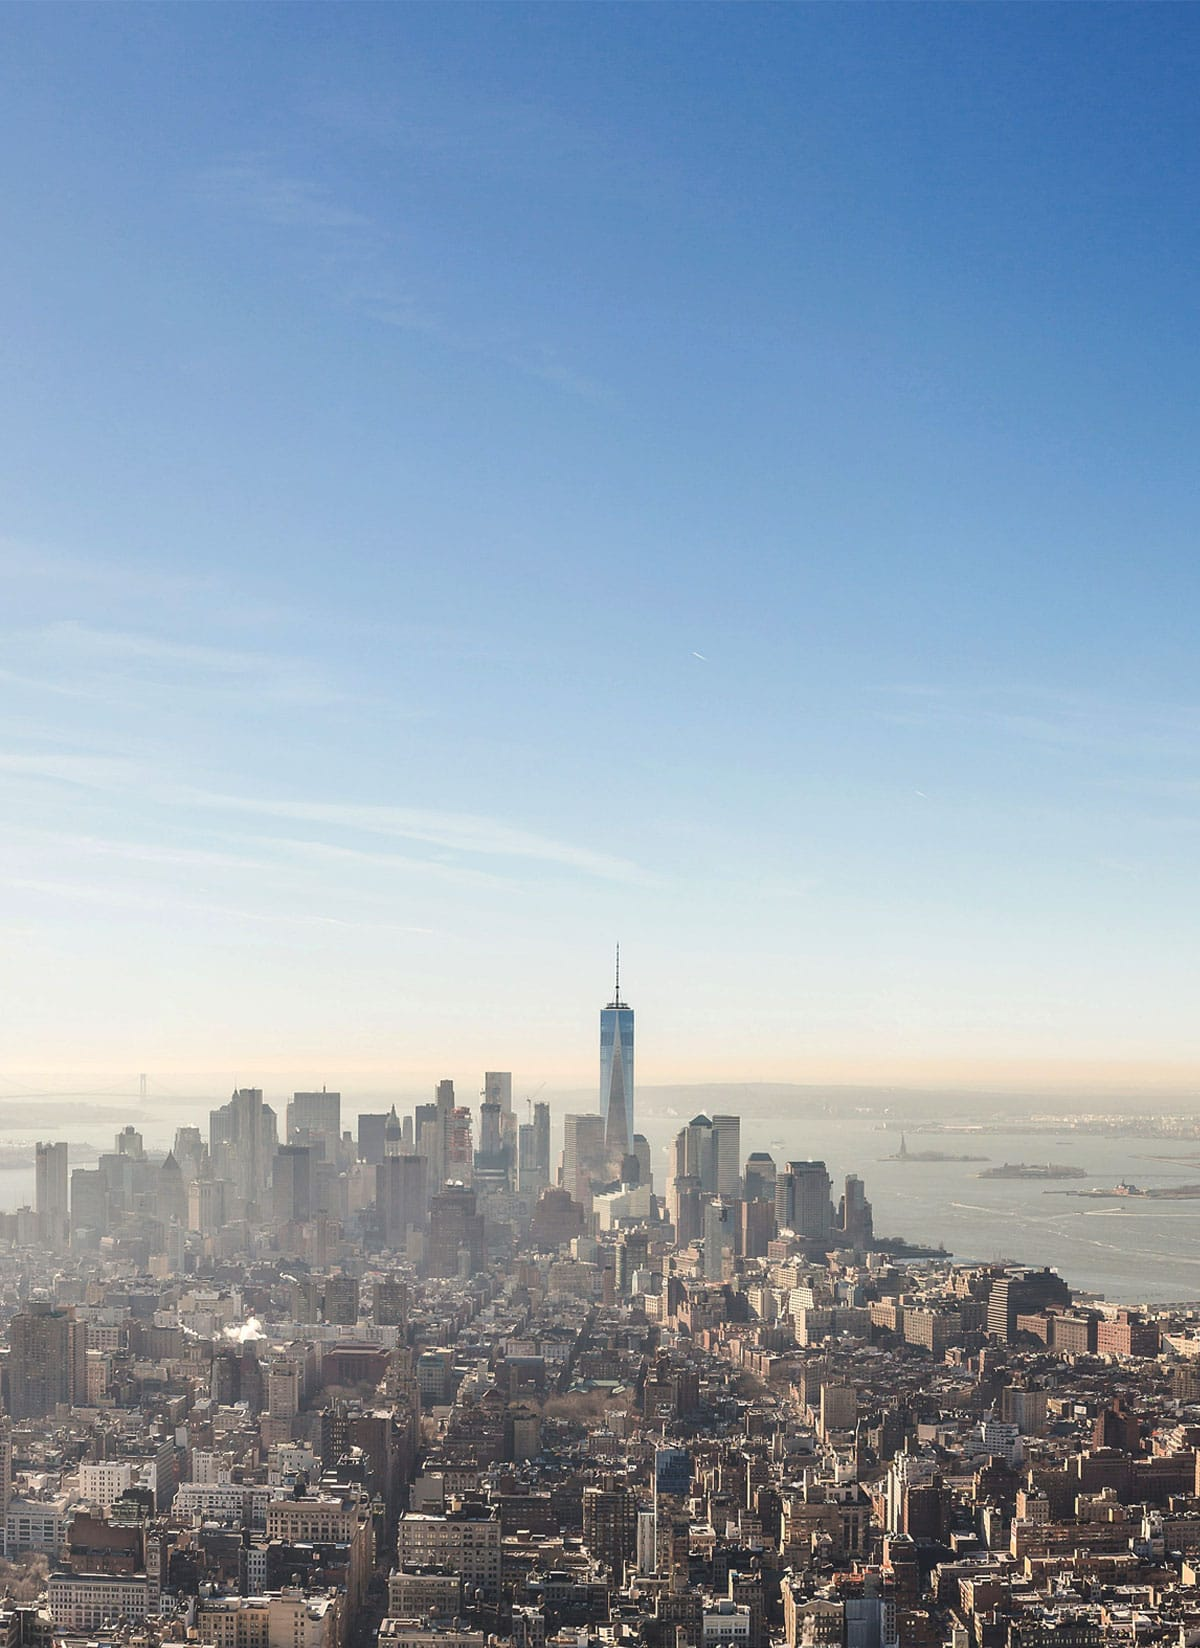 A photo of New York City with a blue sky above.